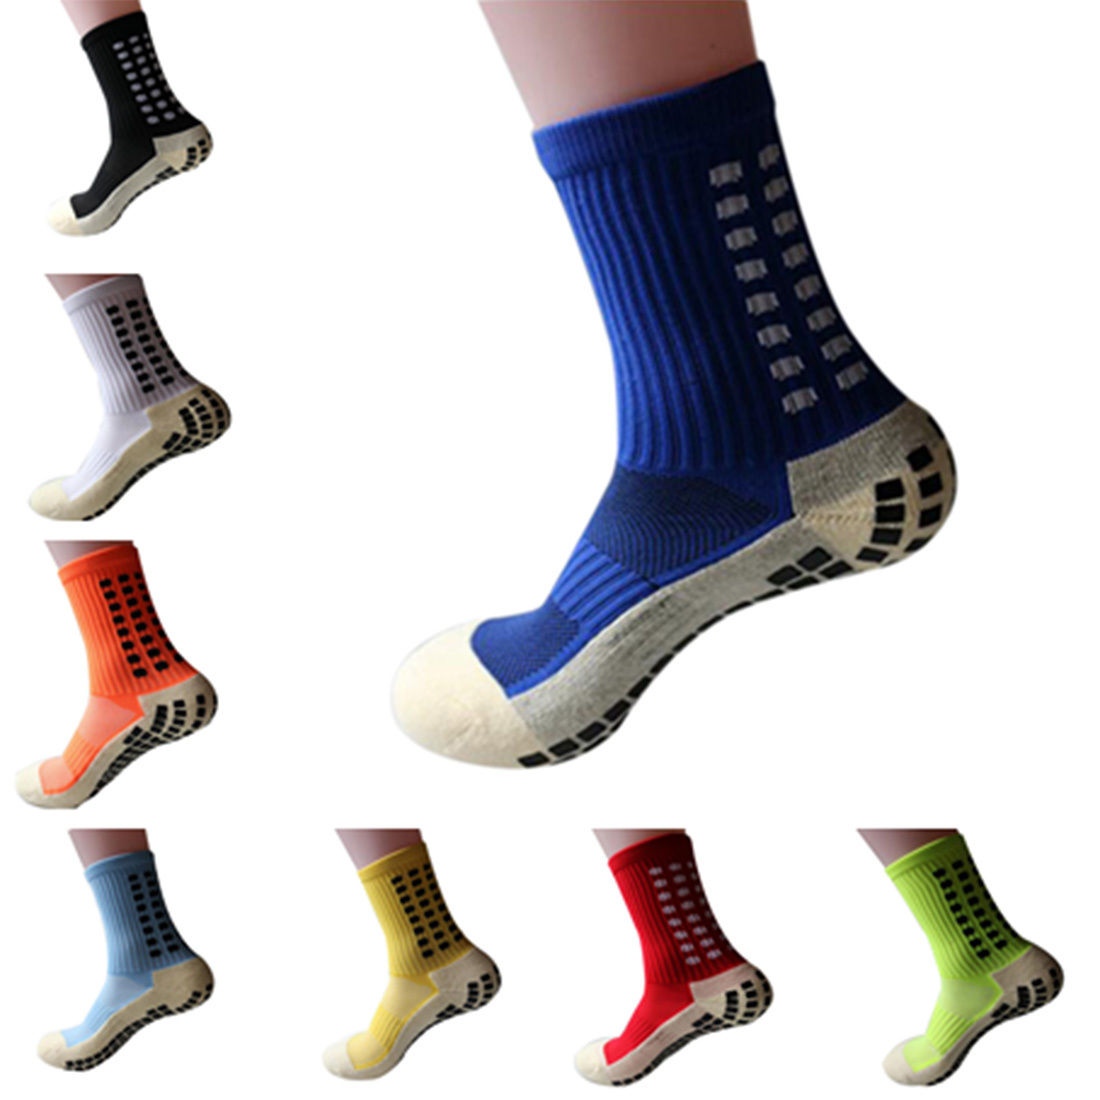 Sport   Socks   Football Soccer Running   Sock   Unisex Anti-Slip Cotton Absorbent Sweat   Socks   Breathable Cycling   Socks   Two Styles New